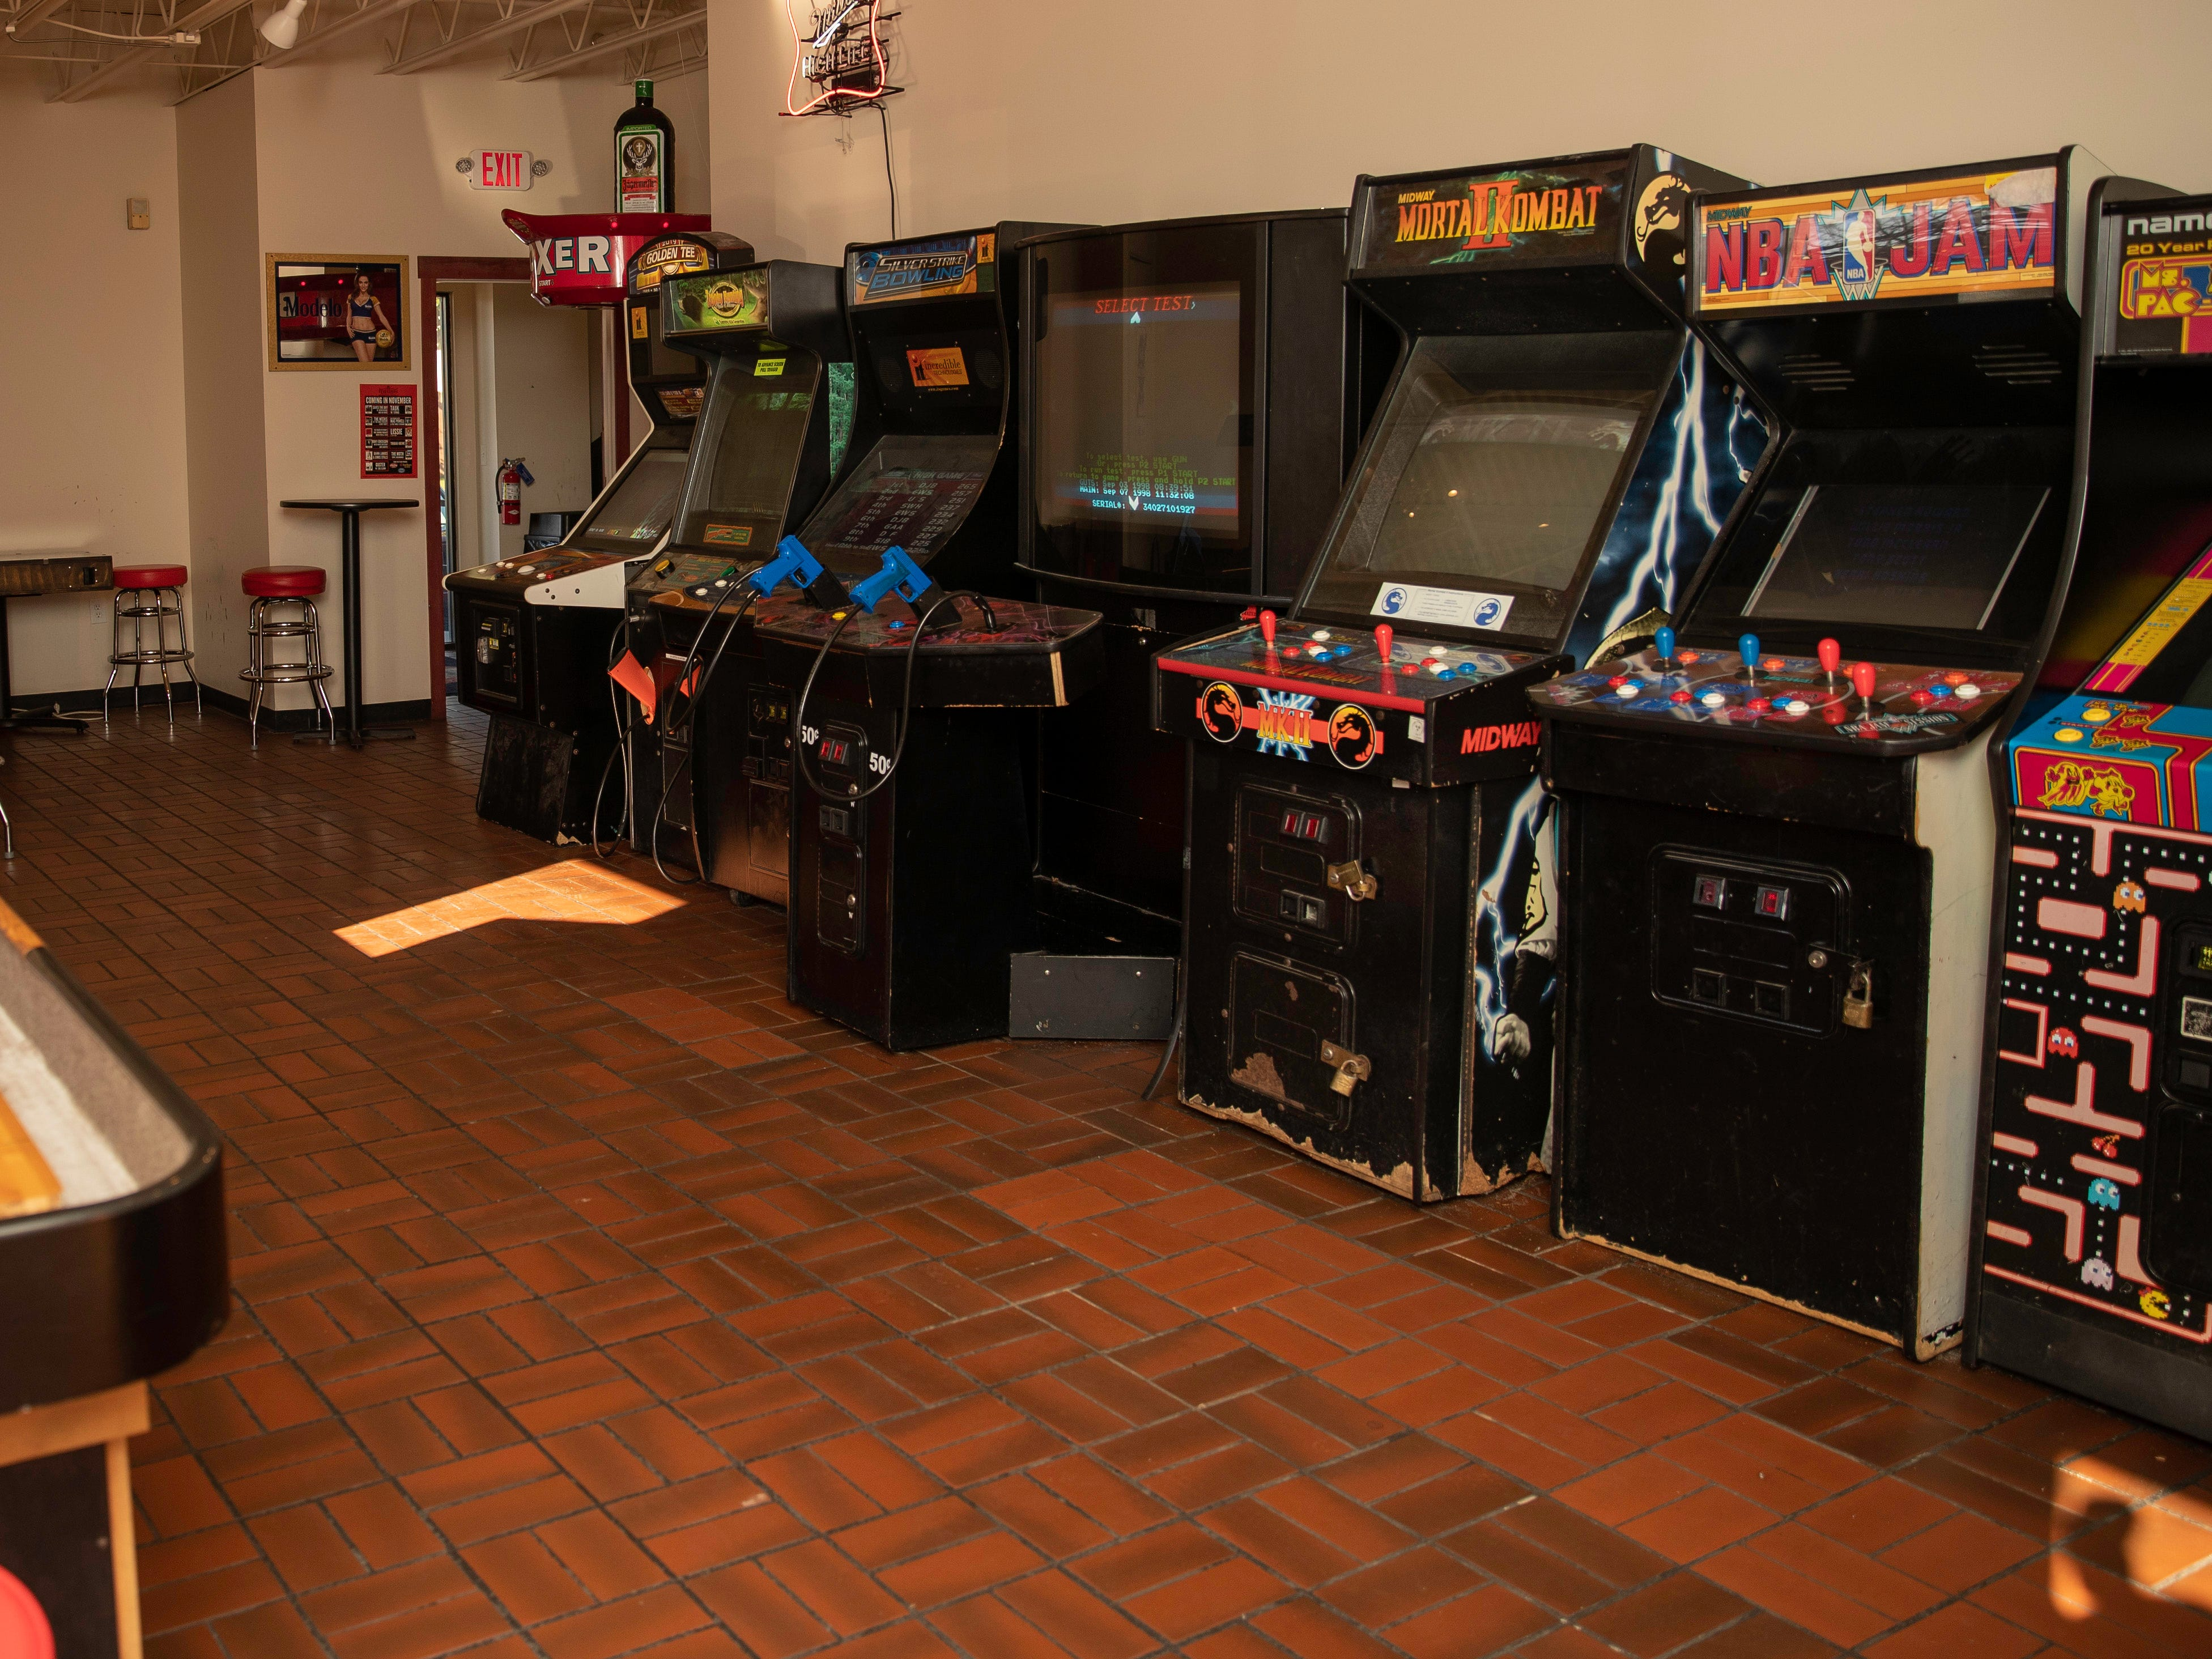 Game room off the rear parking lot entrance offers vintage and newer arcade games as well as table shuffleboard at Butchertown Pizza Hall.